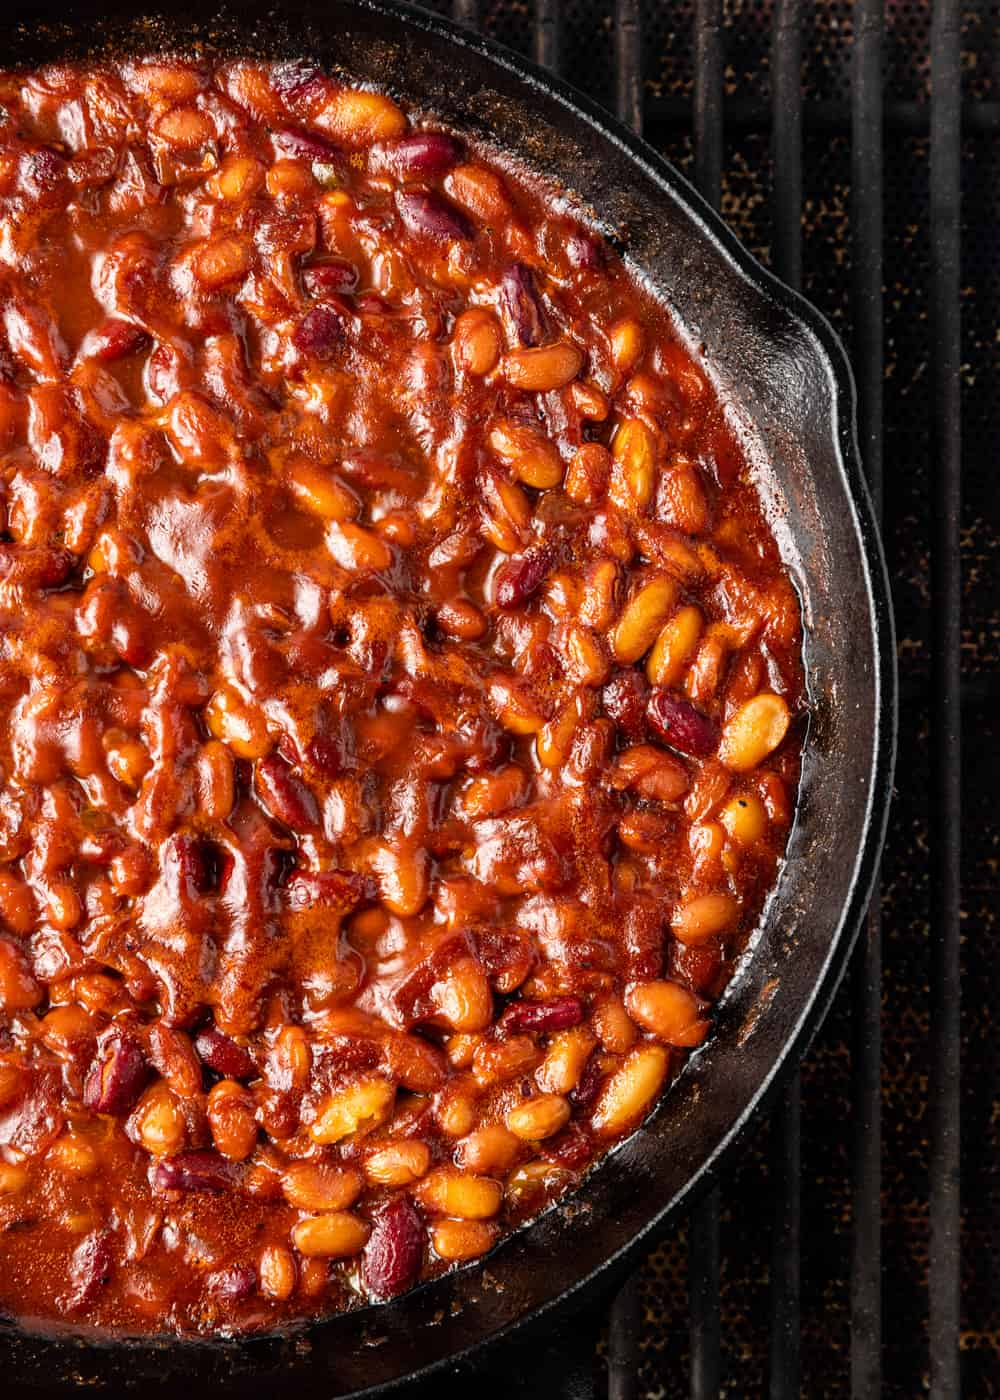 A close up of simmered smoked beans